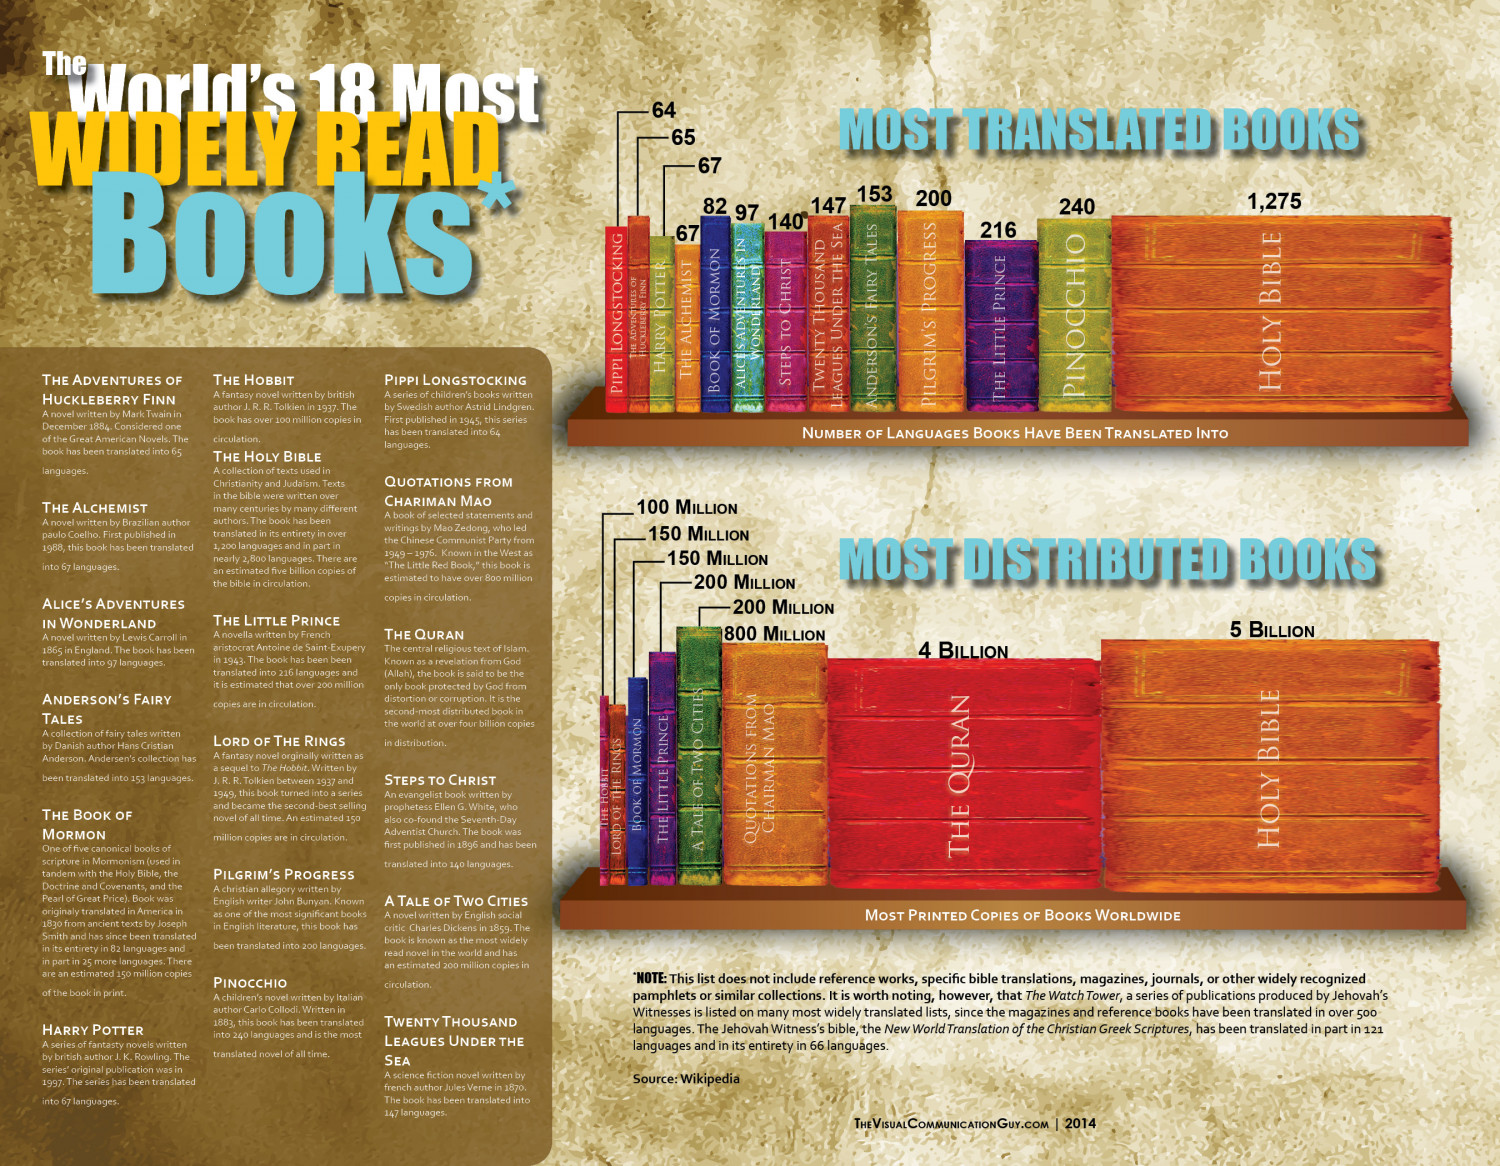 The World's 18 Most Widely Read Books Infographic